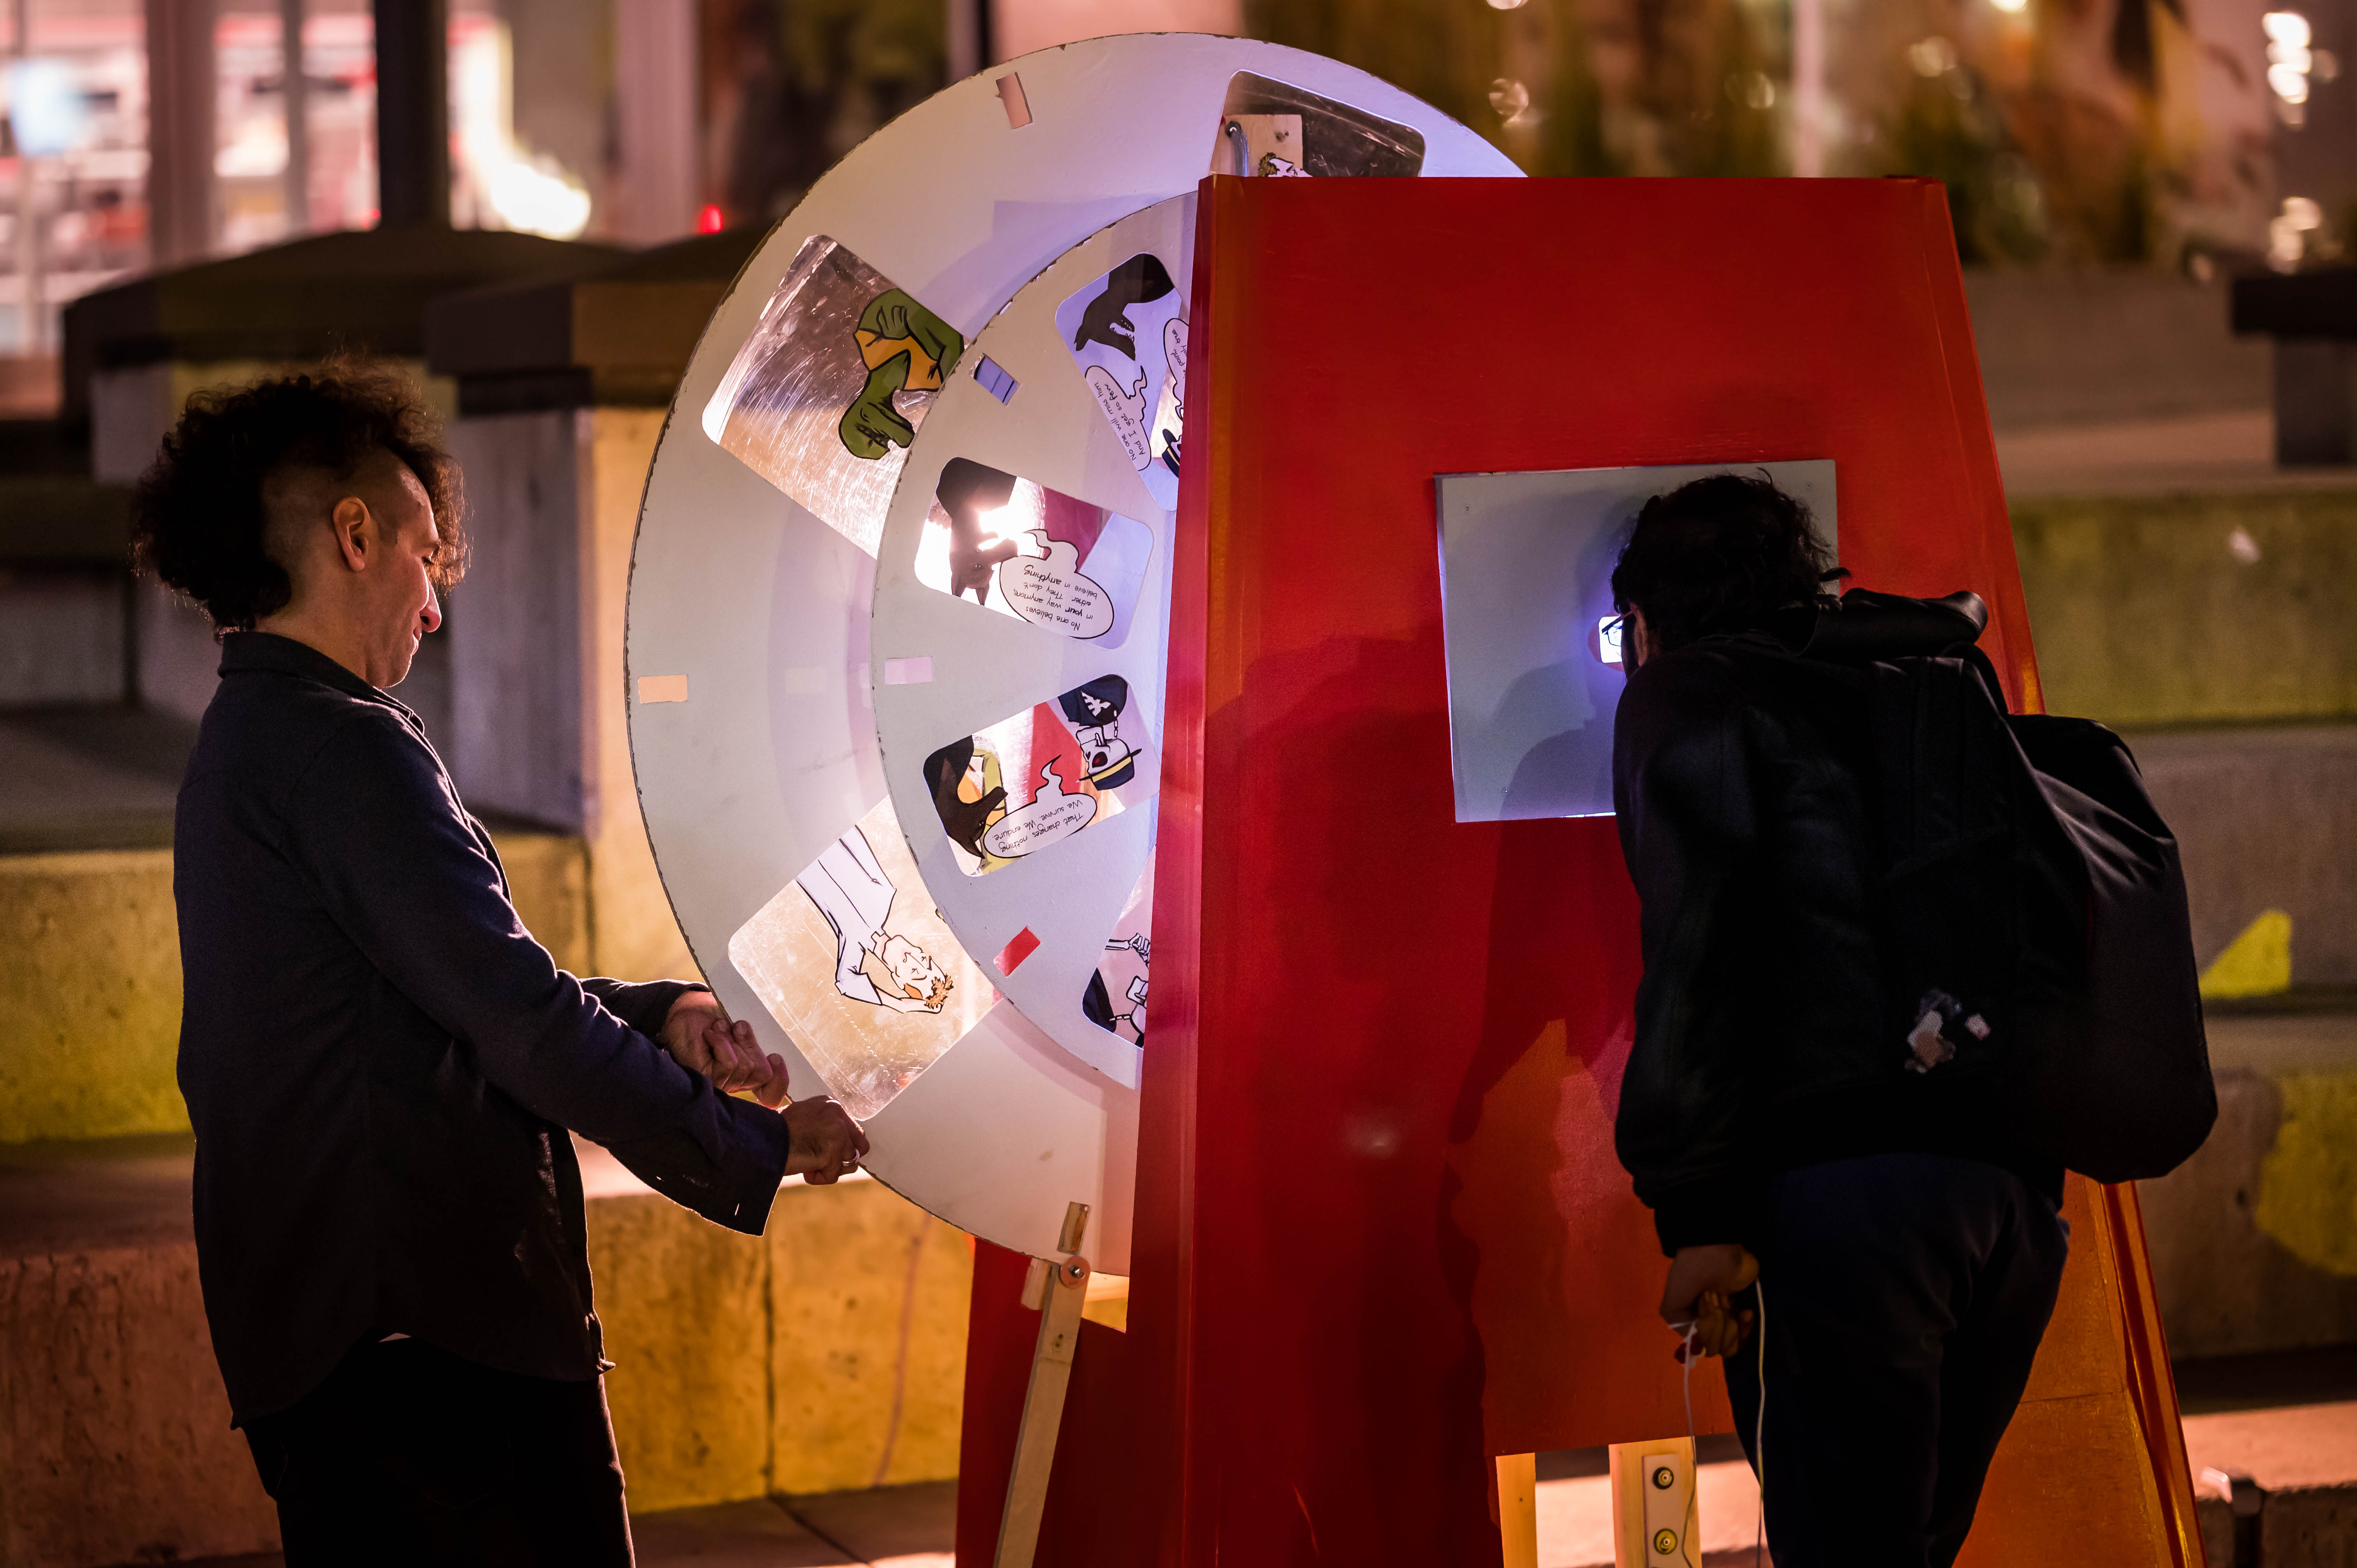 A previous art installation consisting of a person looking through the window of an oversized ViewMaster to see different slides of a comic.